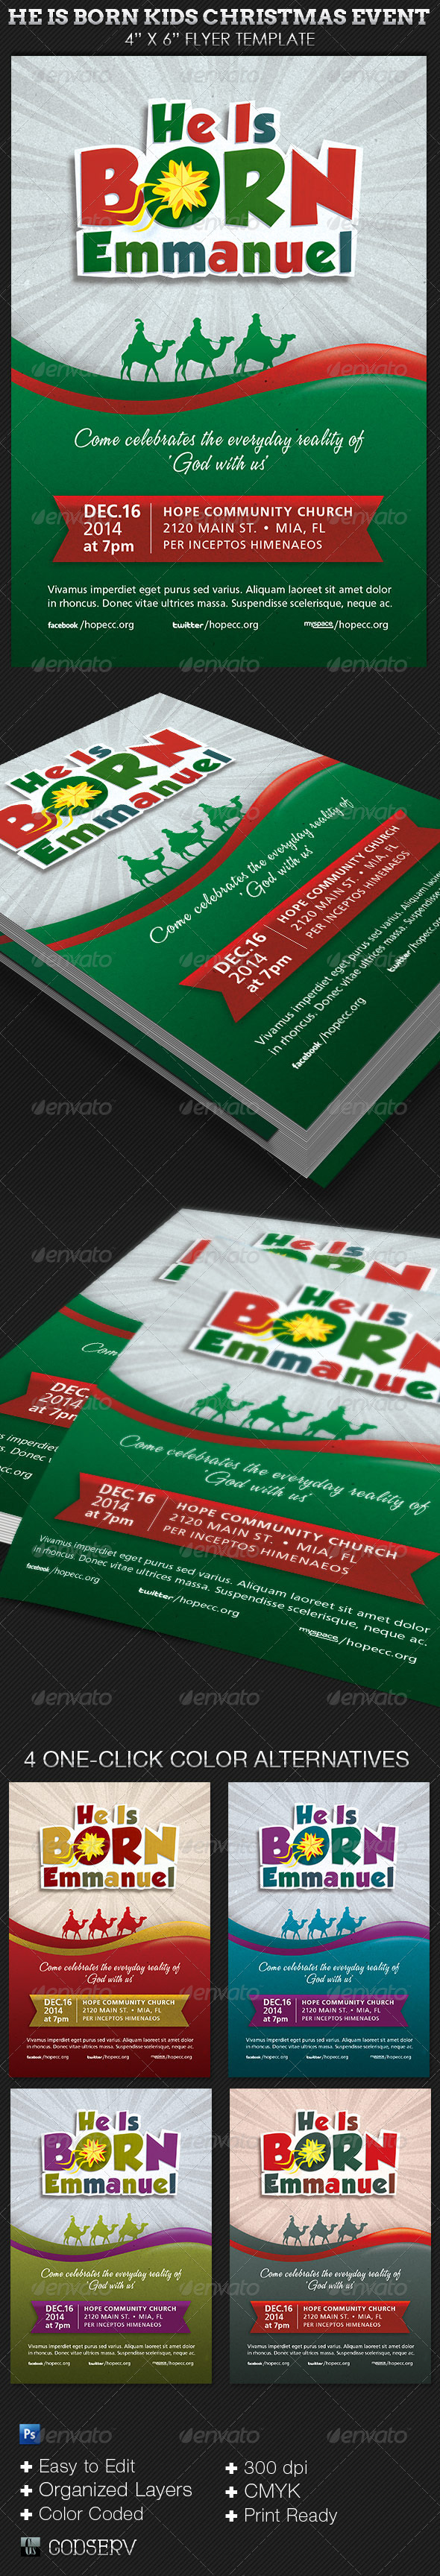 Born Kids Christmas Flyer Template - Church Flyers